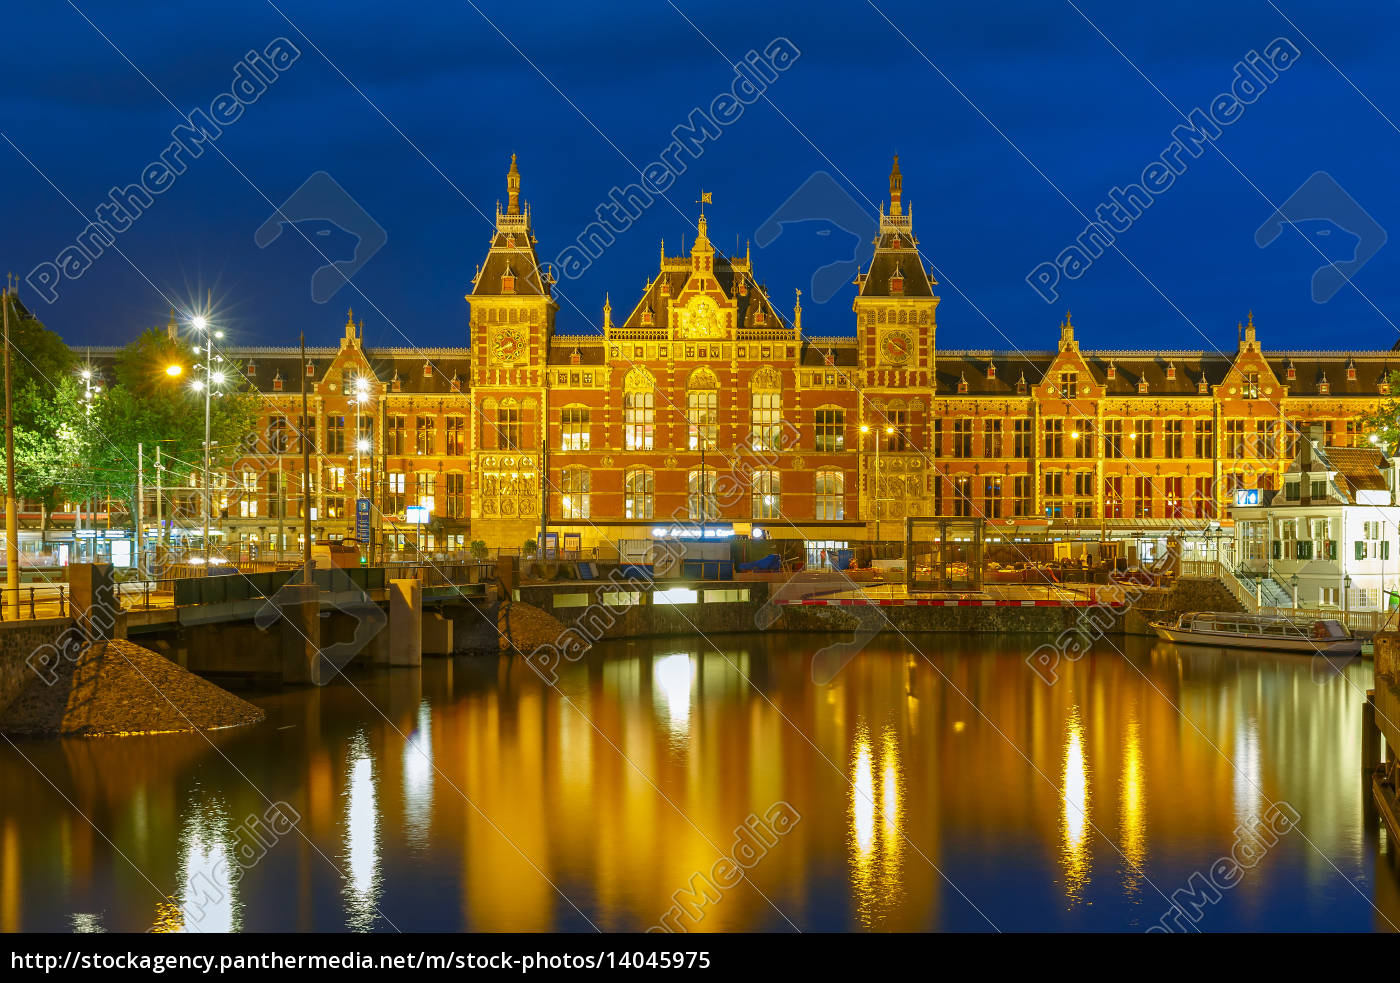 night, amsterdam, canal, and, centraal, station - 14045975